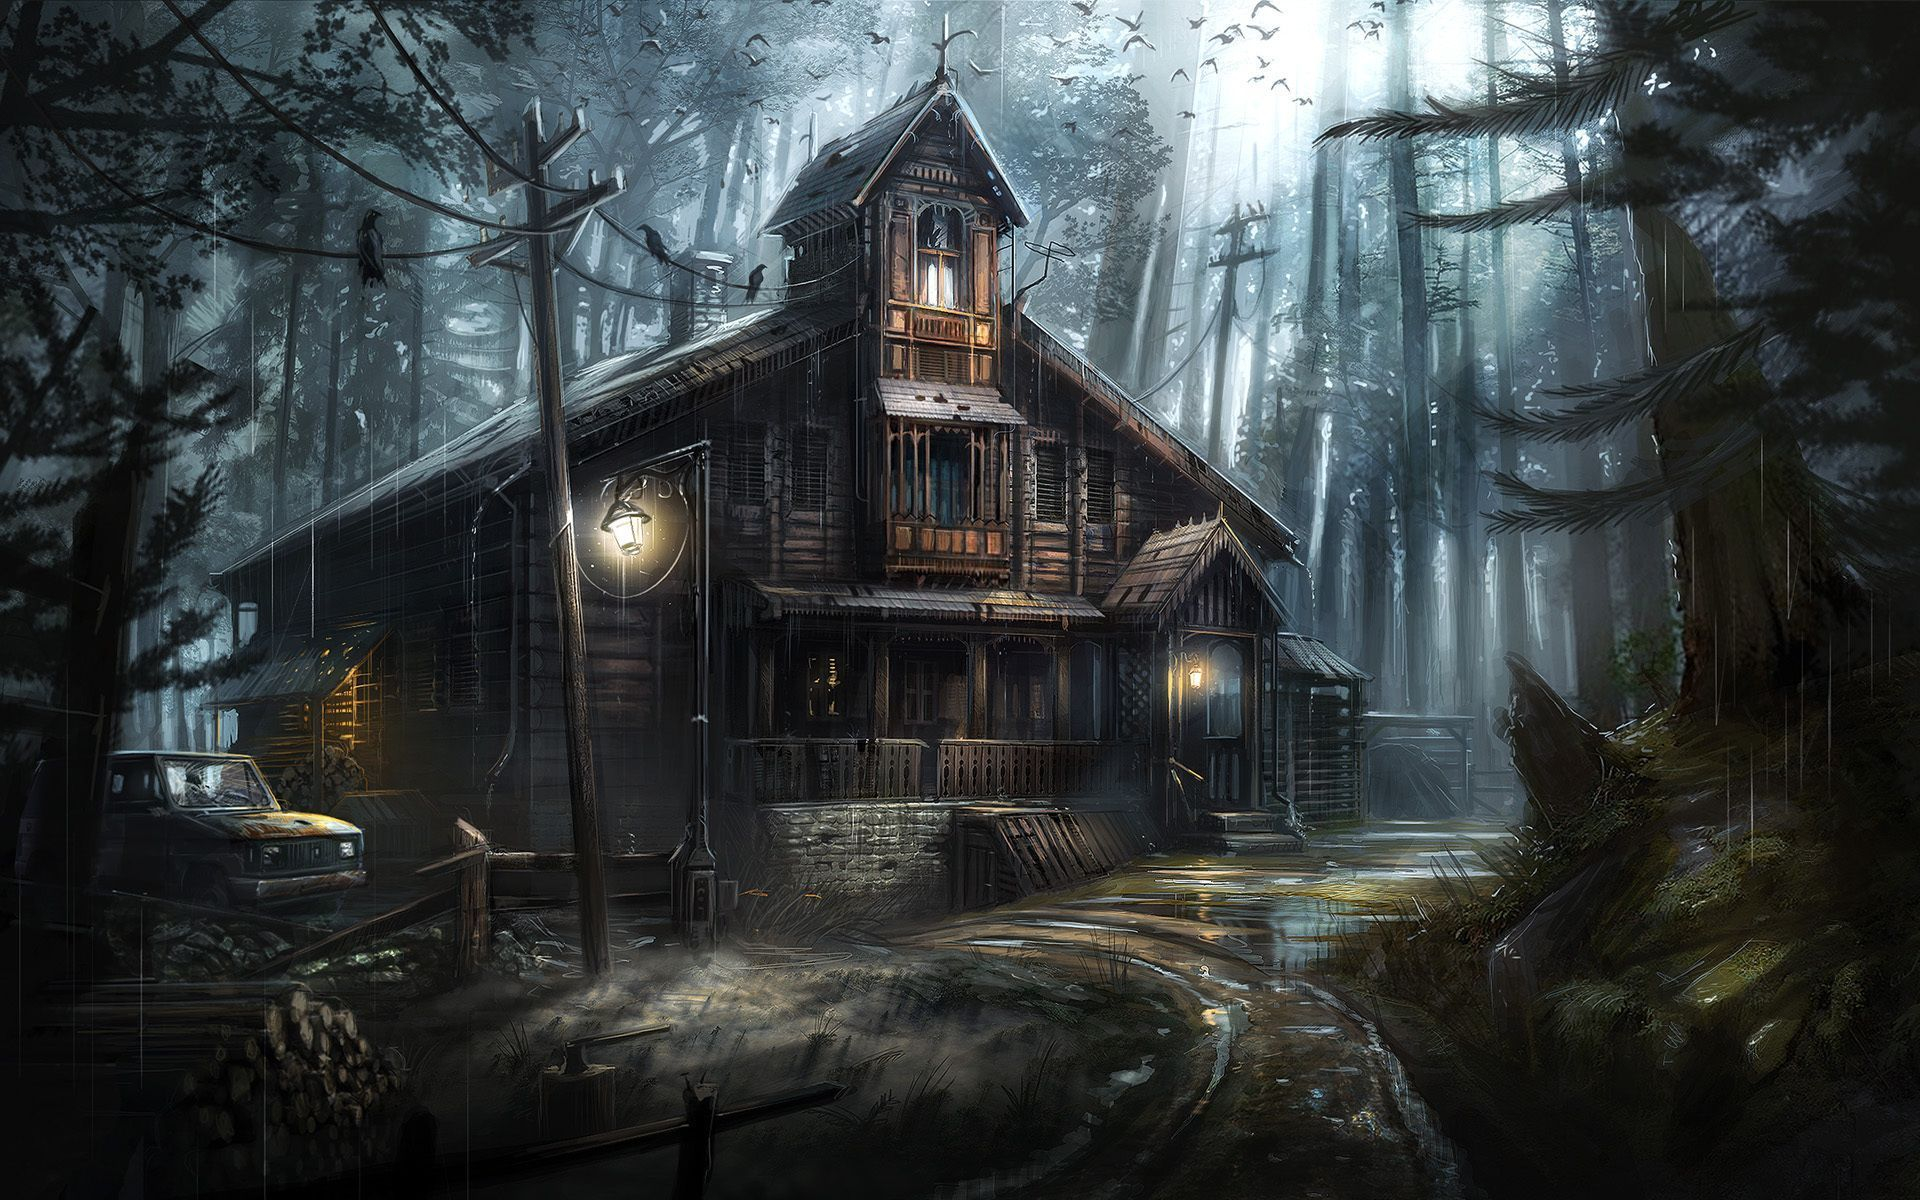 haunted house wallpaper - photo #18